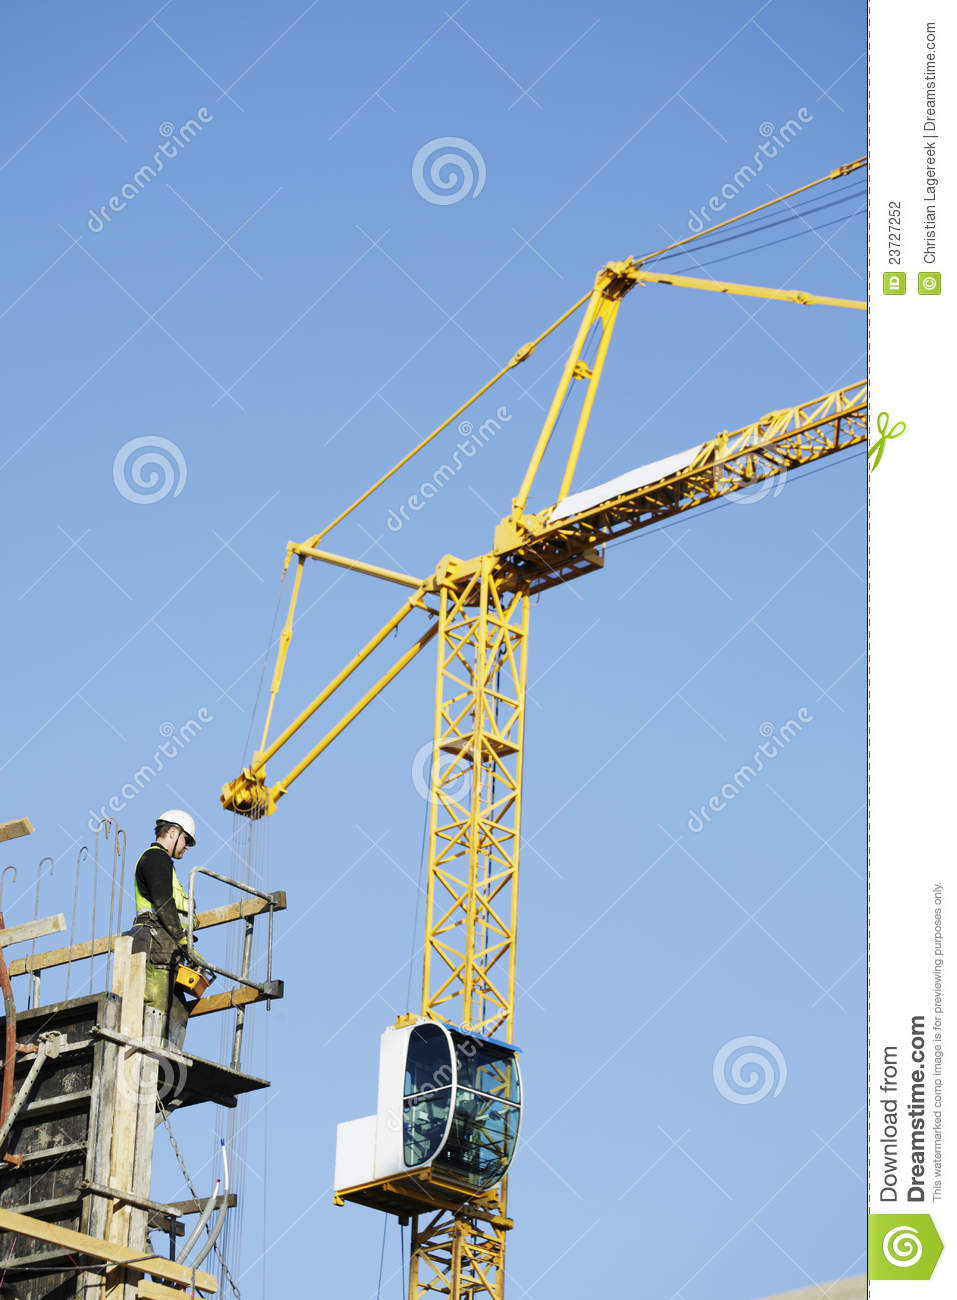 Large Standing Cranes Stencil: Crane Operator With Remote Control Stock Photography